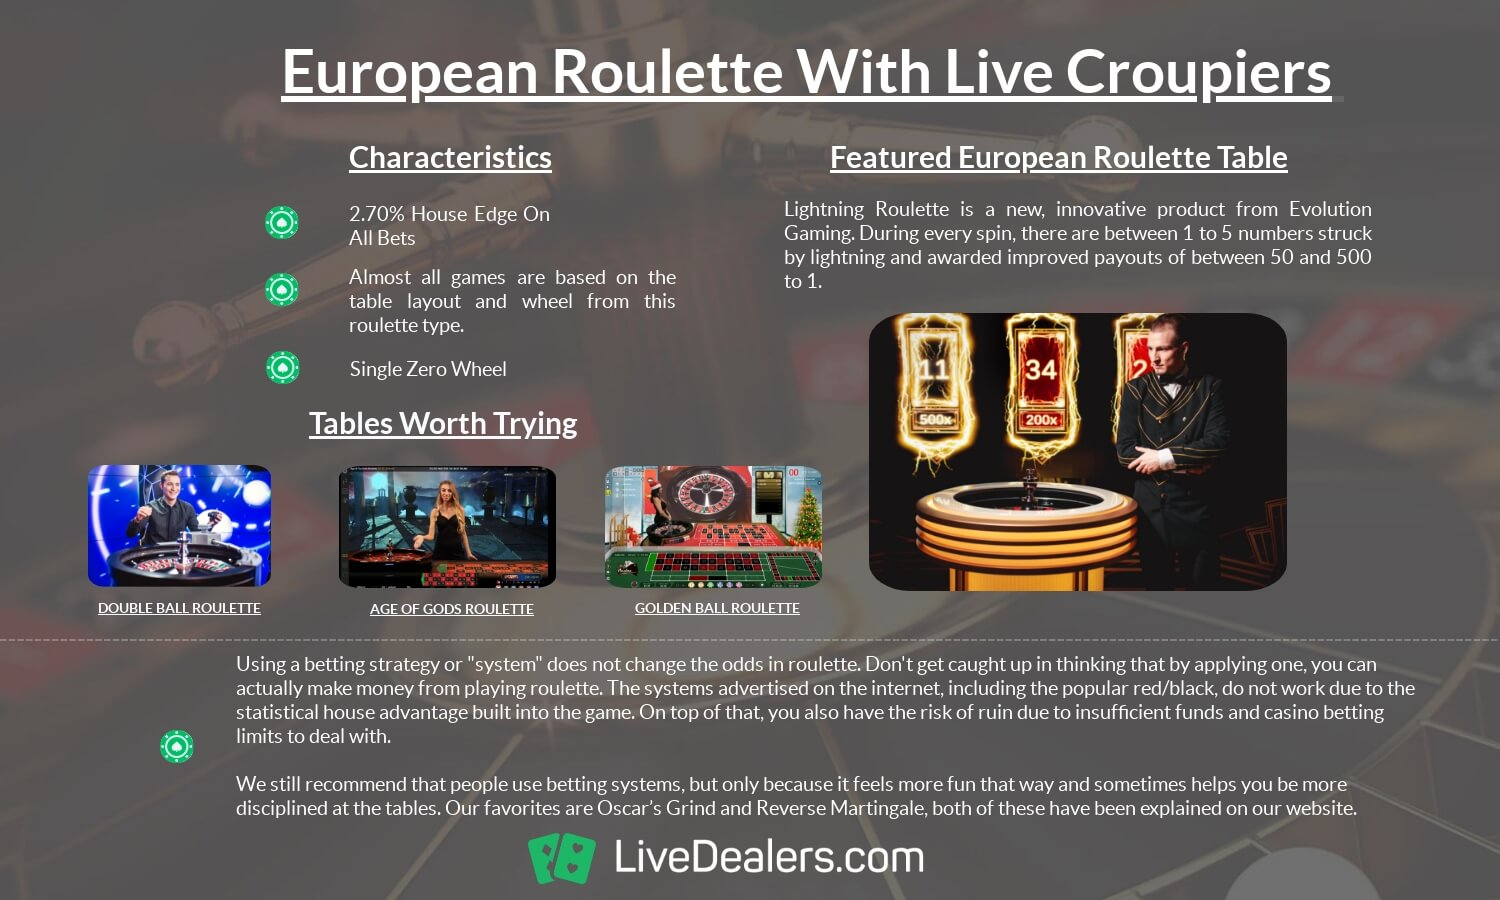 EUROPEAN ROULETTE WITH LIVE DEALERS